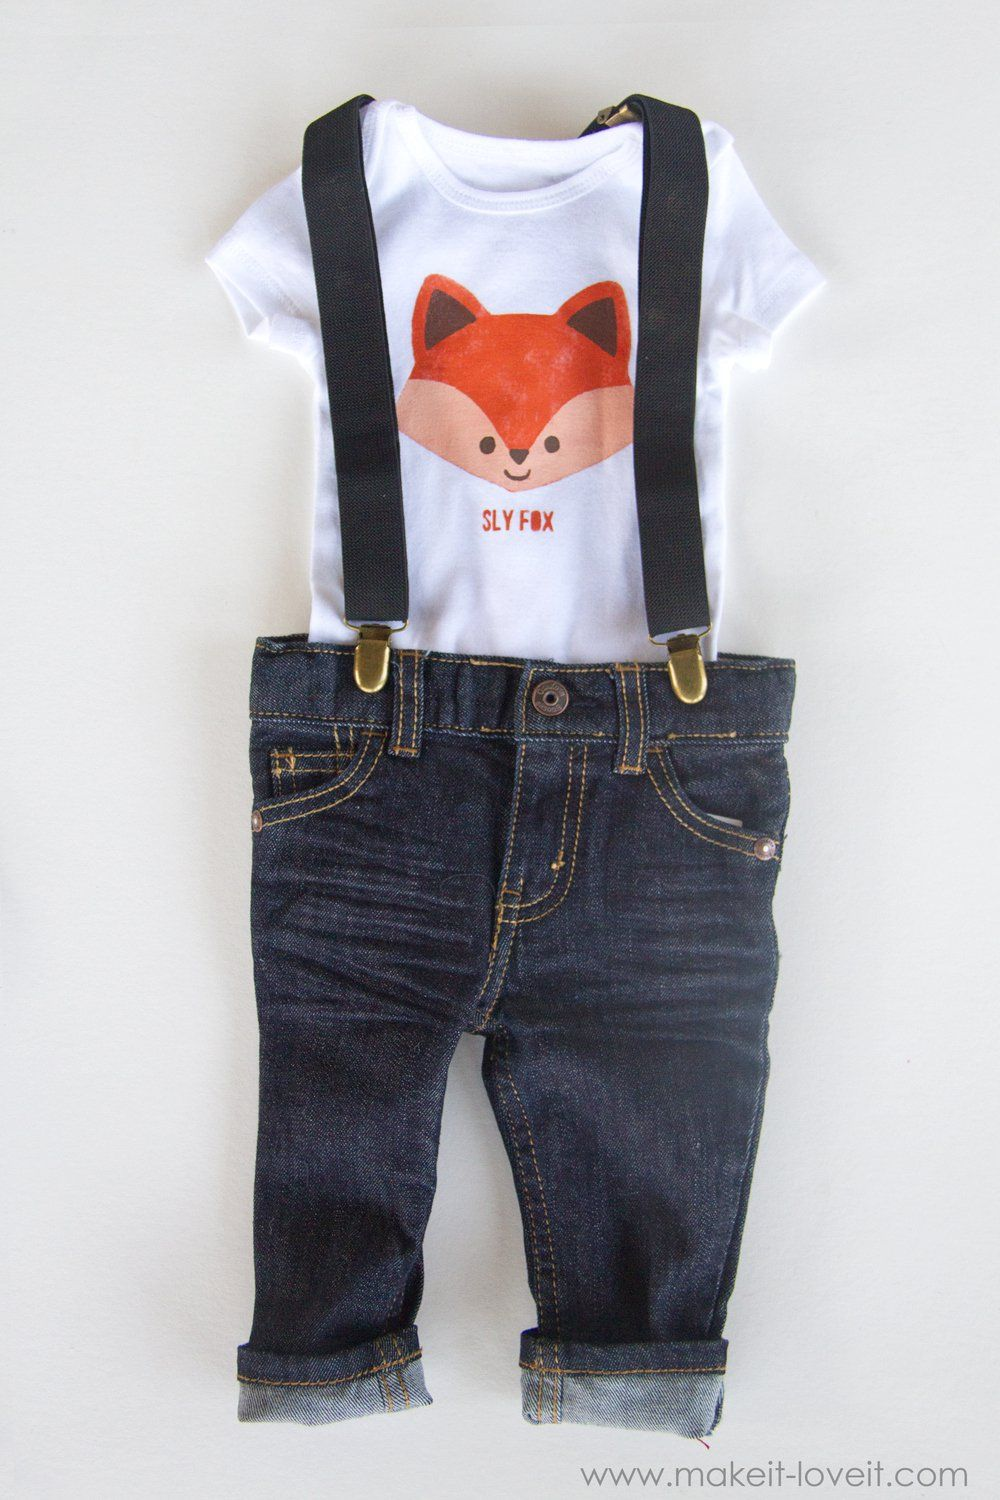 Foxbearraccoon diy stenciled onesies with tails on the